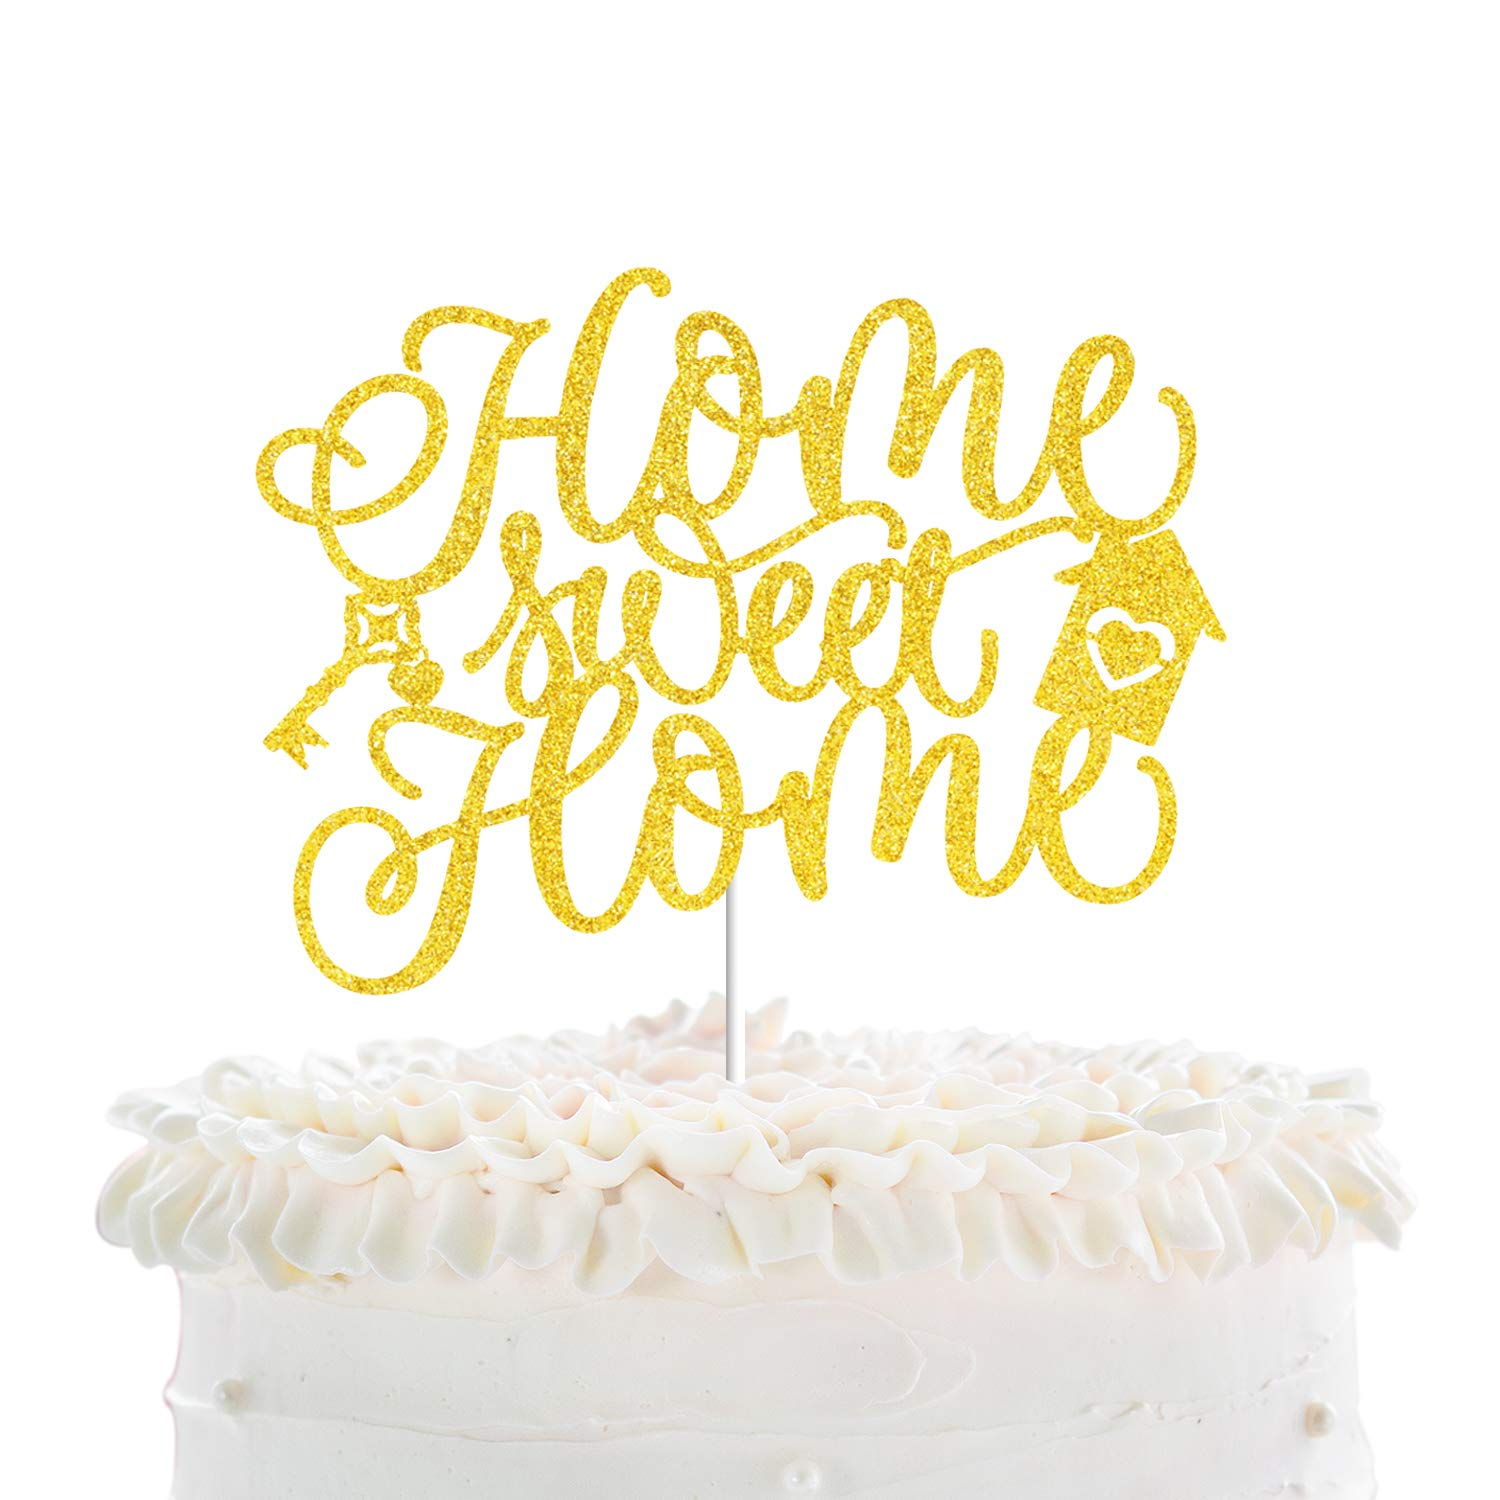 Home Sweet Home Cake Toppers - New House Housewarming Party Gold Glitter Key Cake Décor - Welcome Home Family Party Decorations